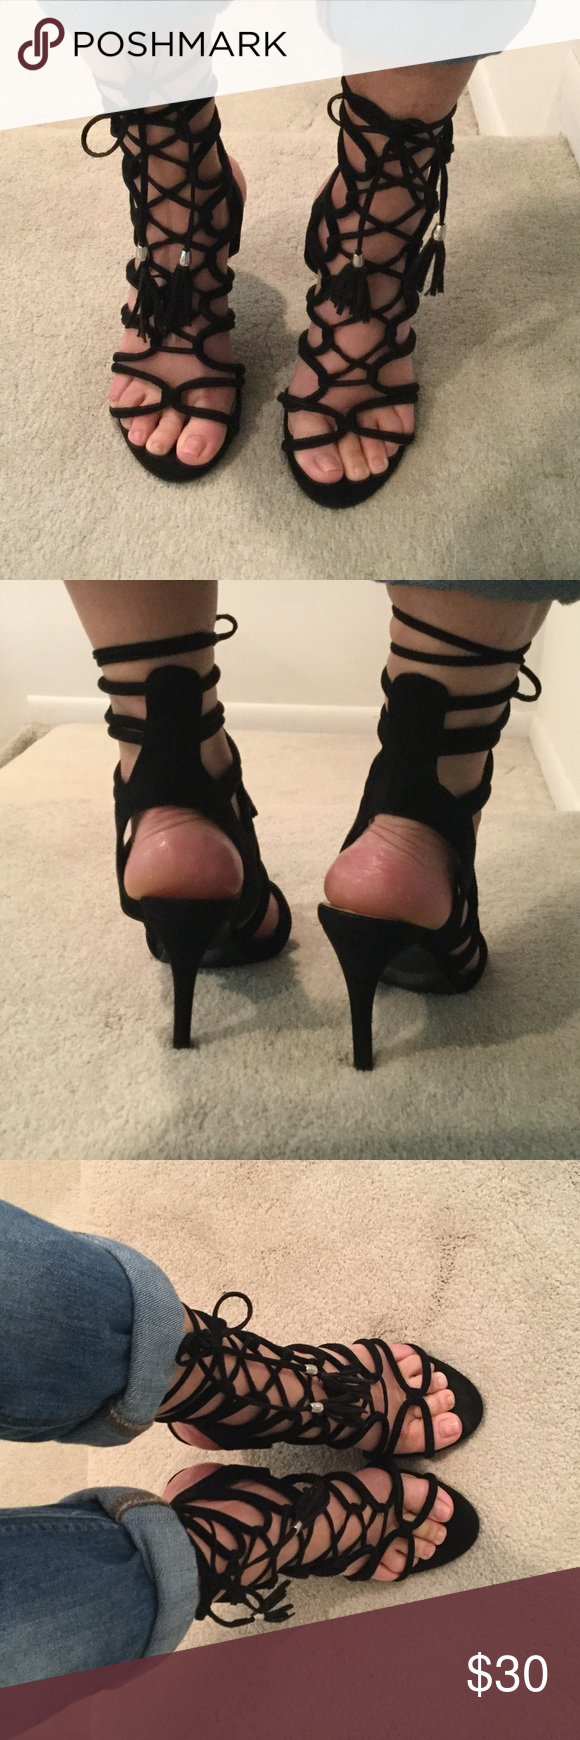 Black gladiator heels Suede gladiator pumps. In great condition! Have black tassels that give style to outfit. Size 61/2 Wild Diva Shoes Heels